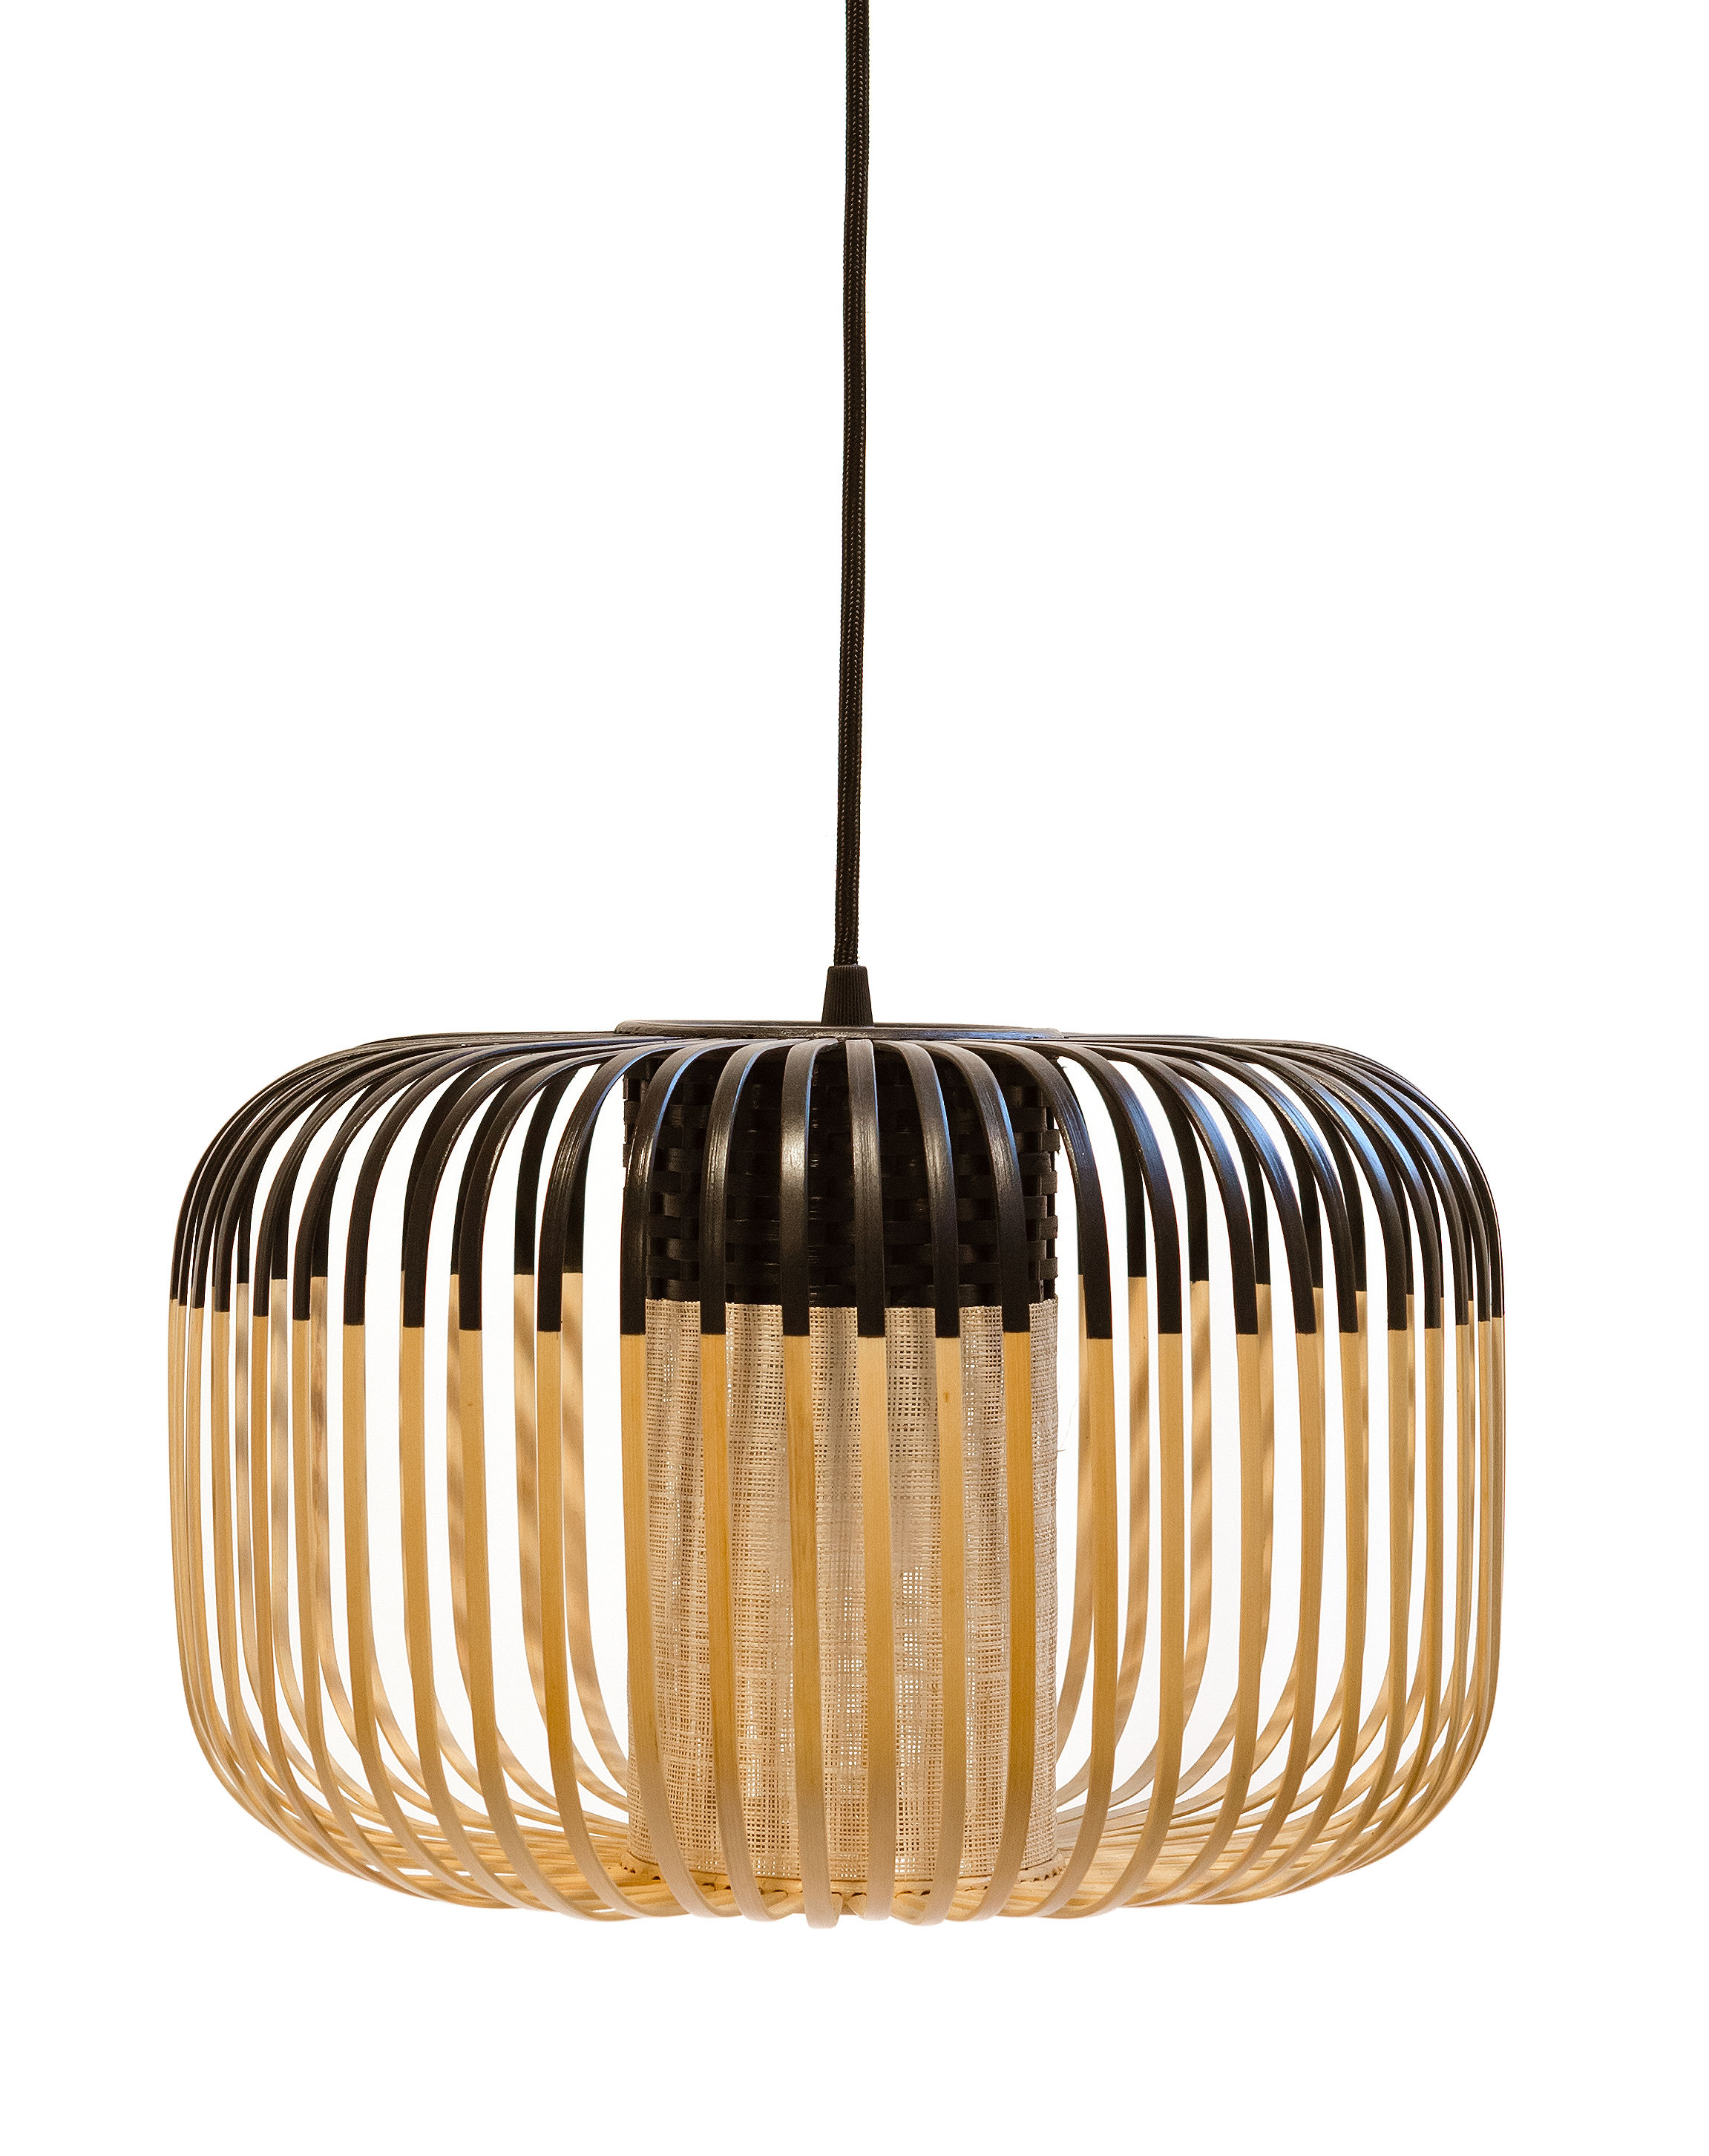 Suspension bamboo light s outdoor h 23 x 35 cm noir naturel forestier - Suspension luminaire bambou ...